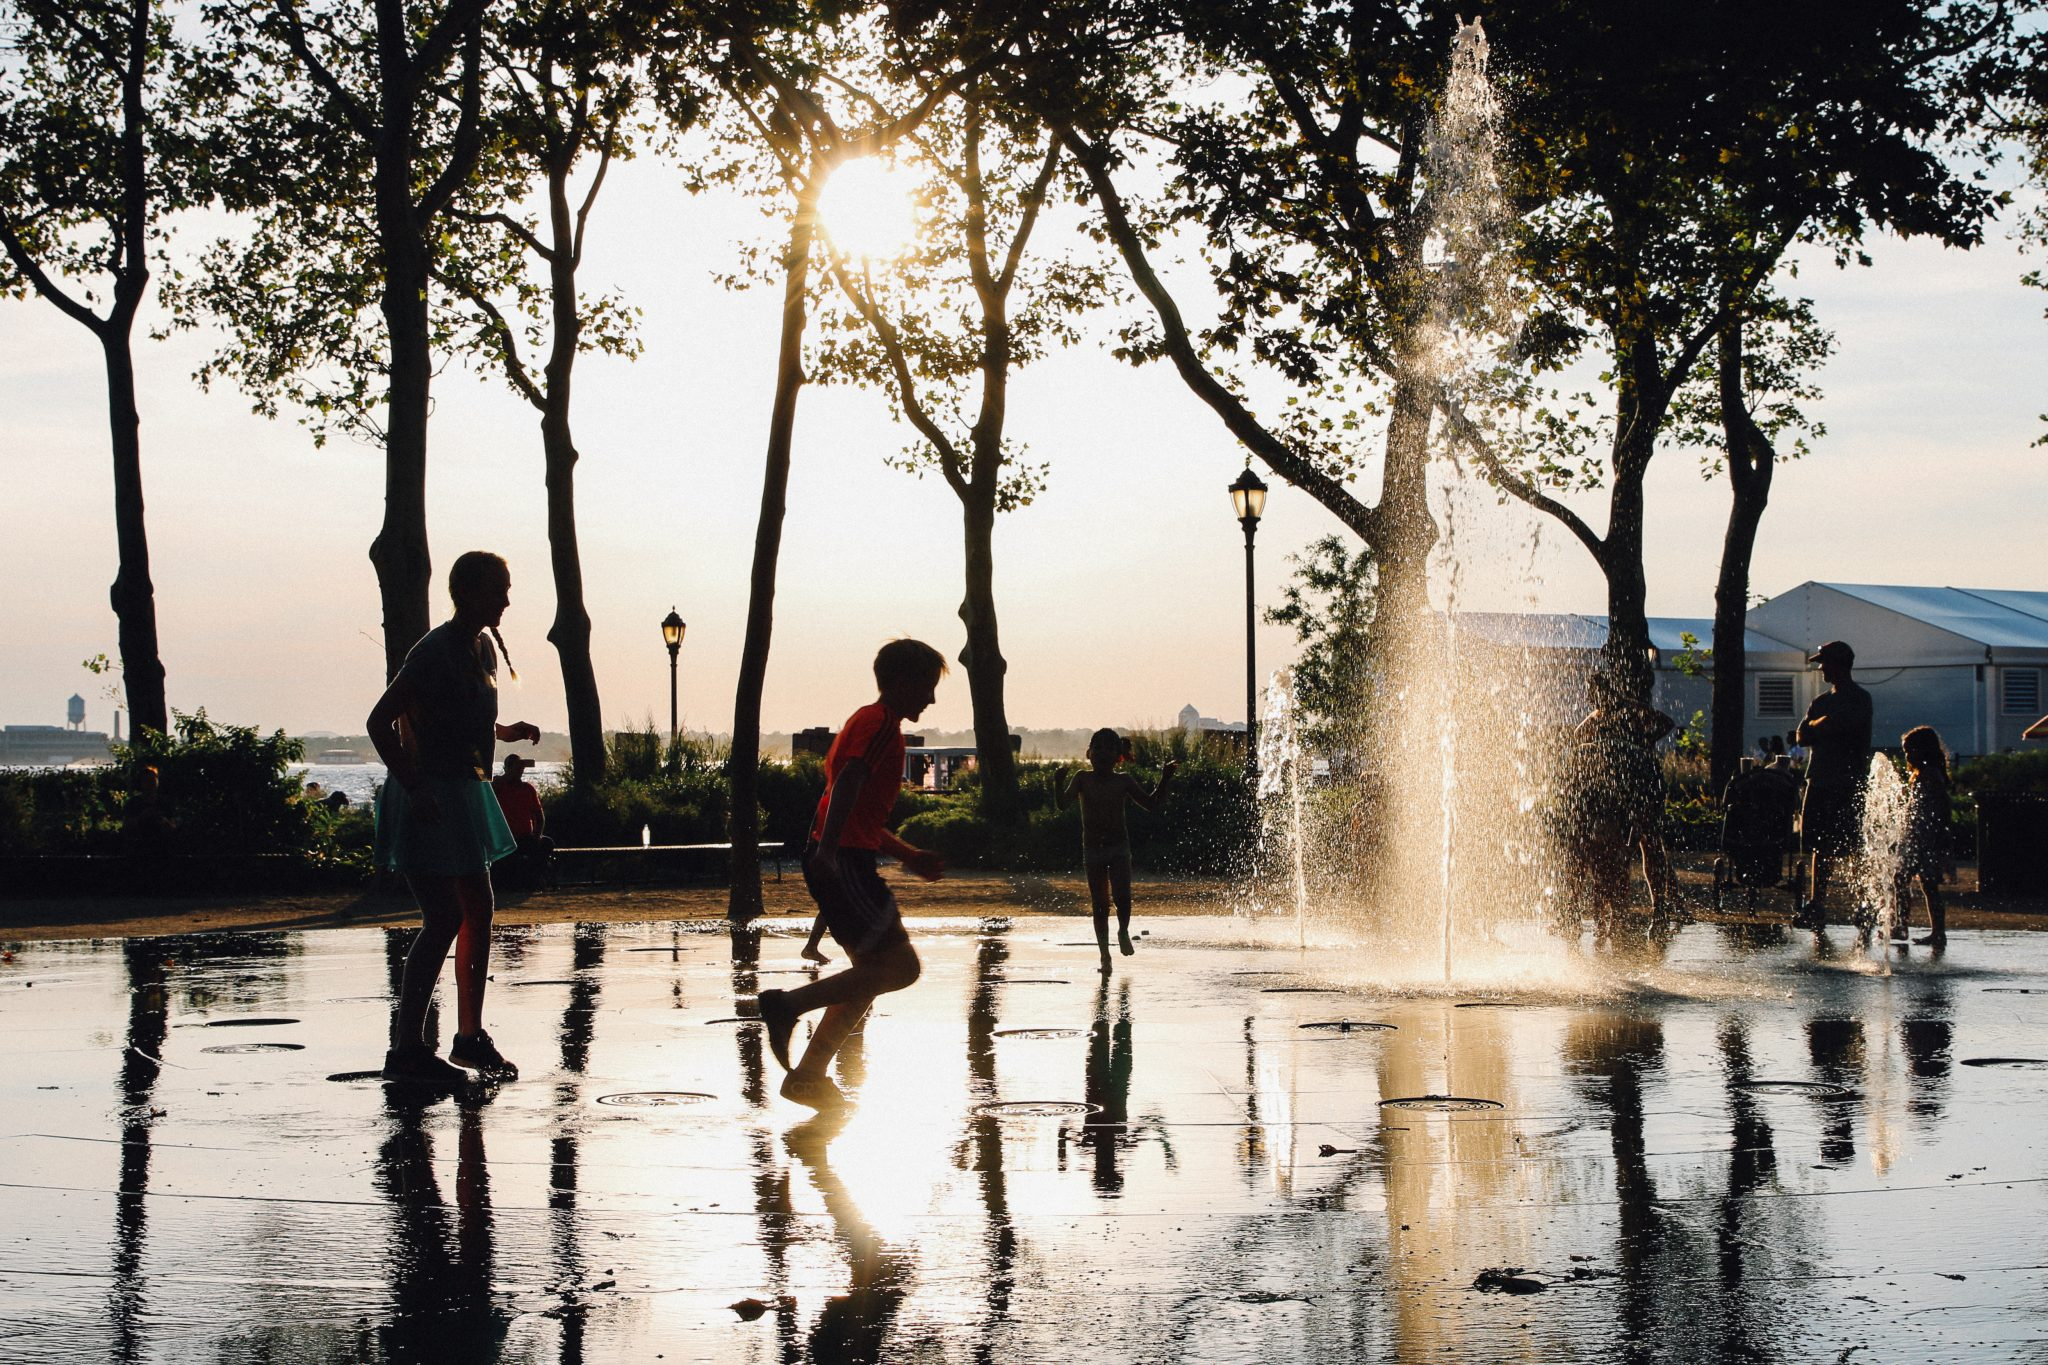 Children play in the water fountain at Battery Park. Luke Galati Photography in New York City